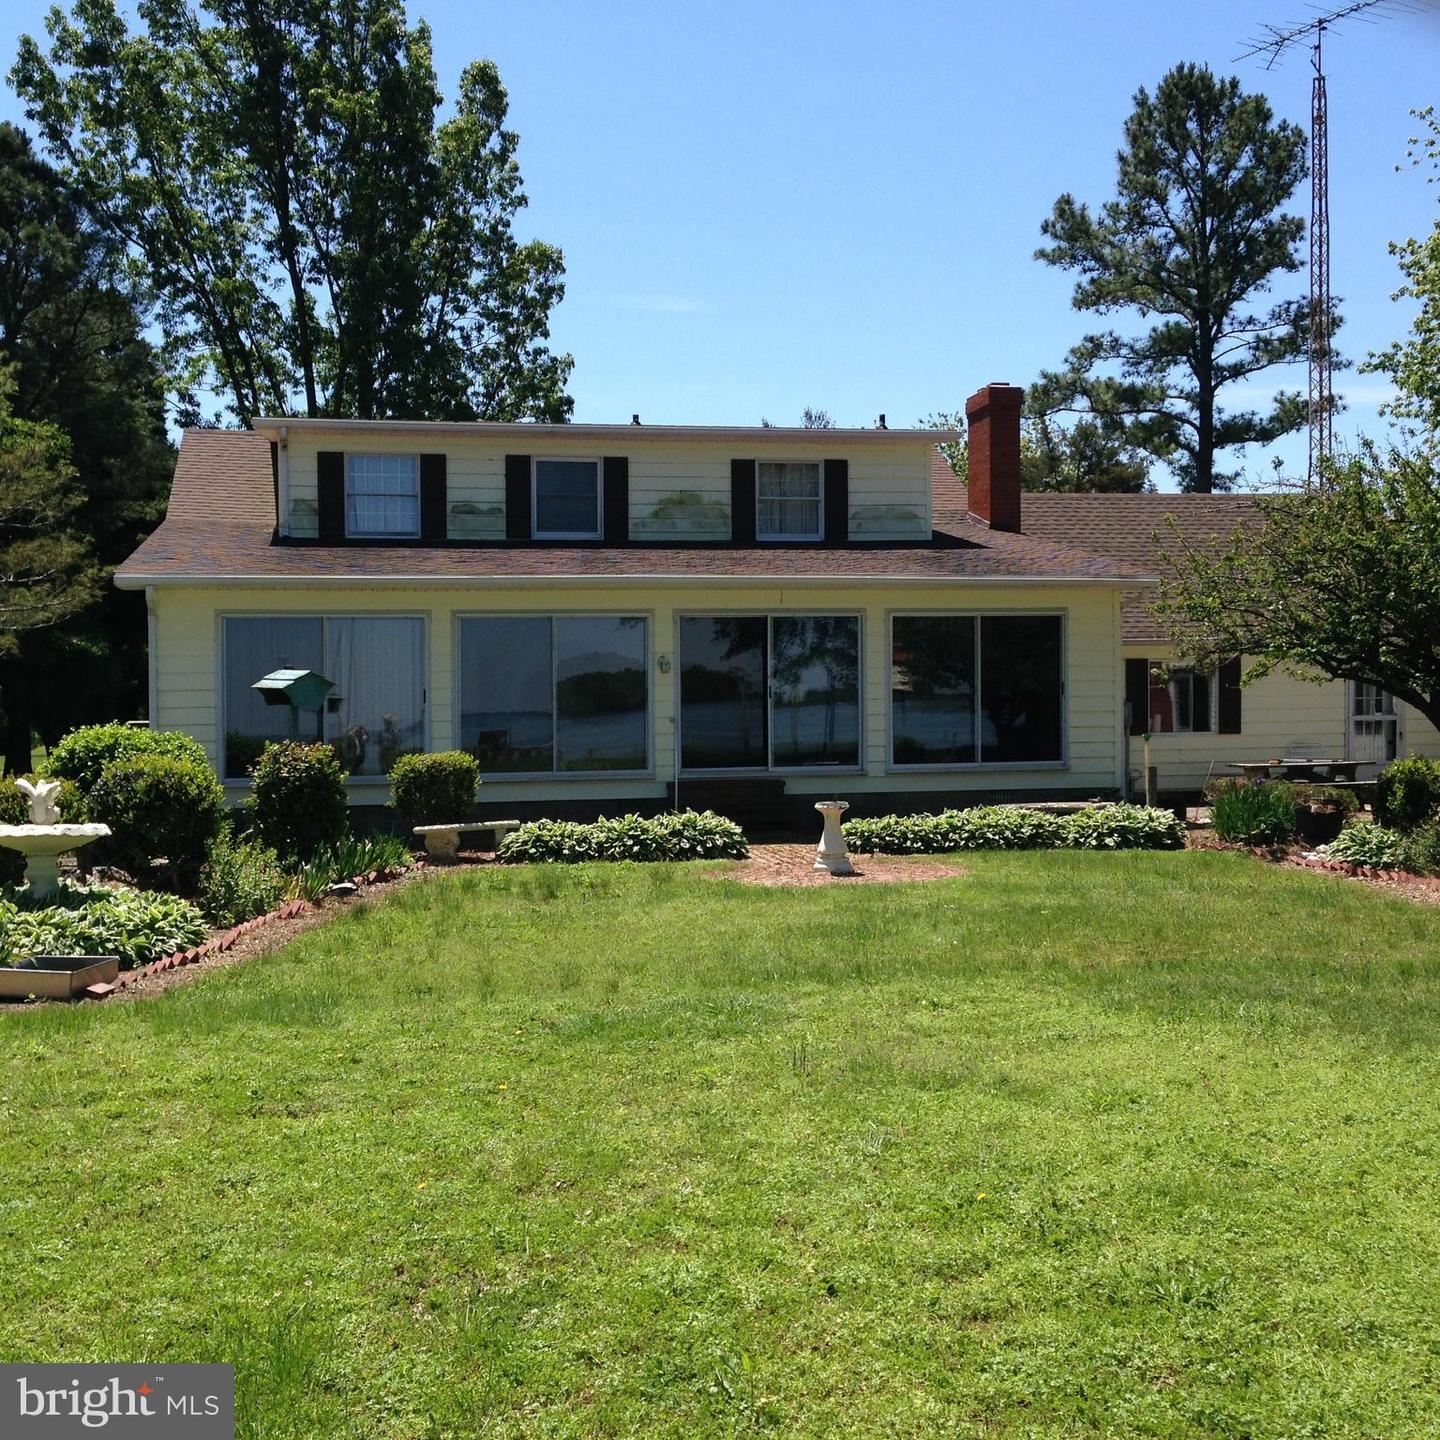 702 TWIN POINT COVE RD, Cambridge, MD 21613 - MLS#: MDDO125286